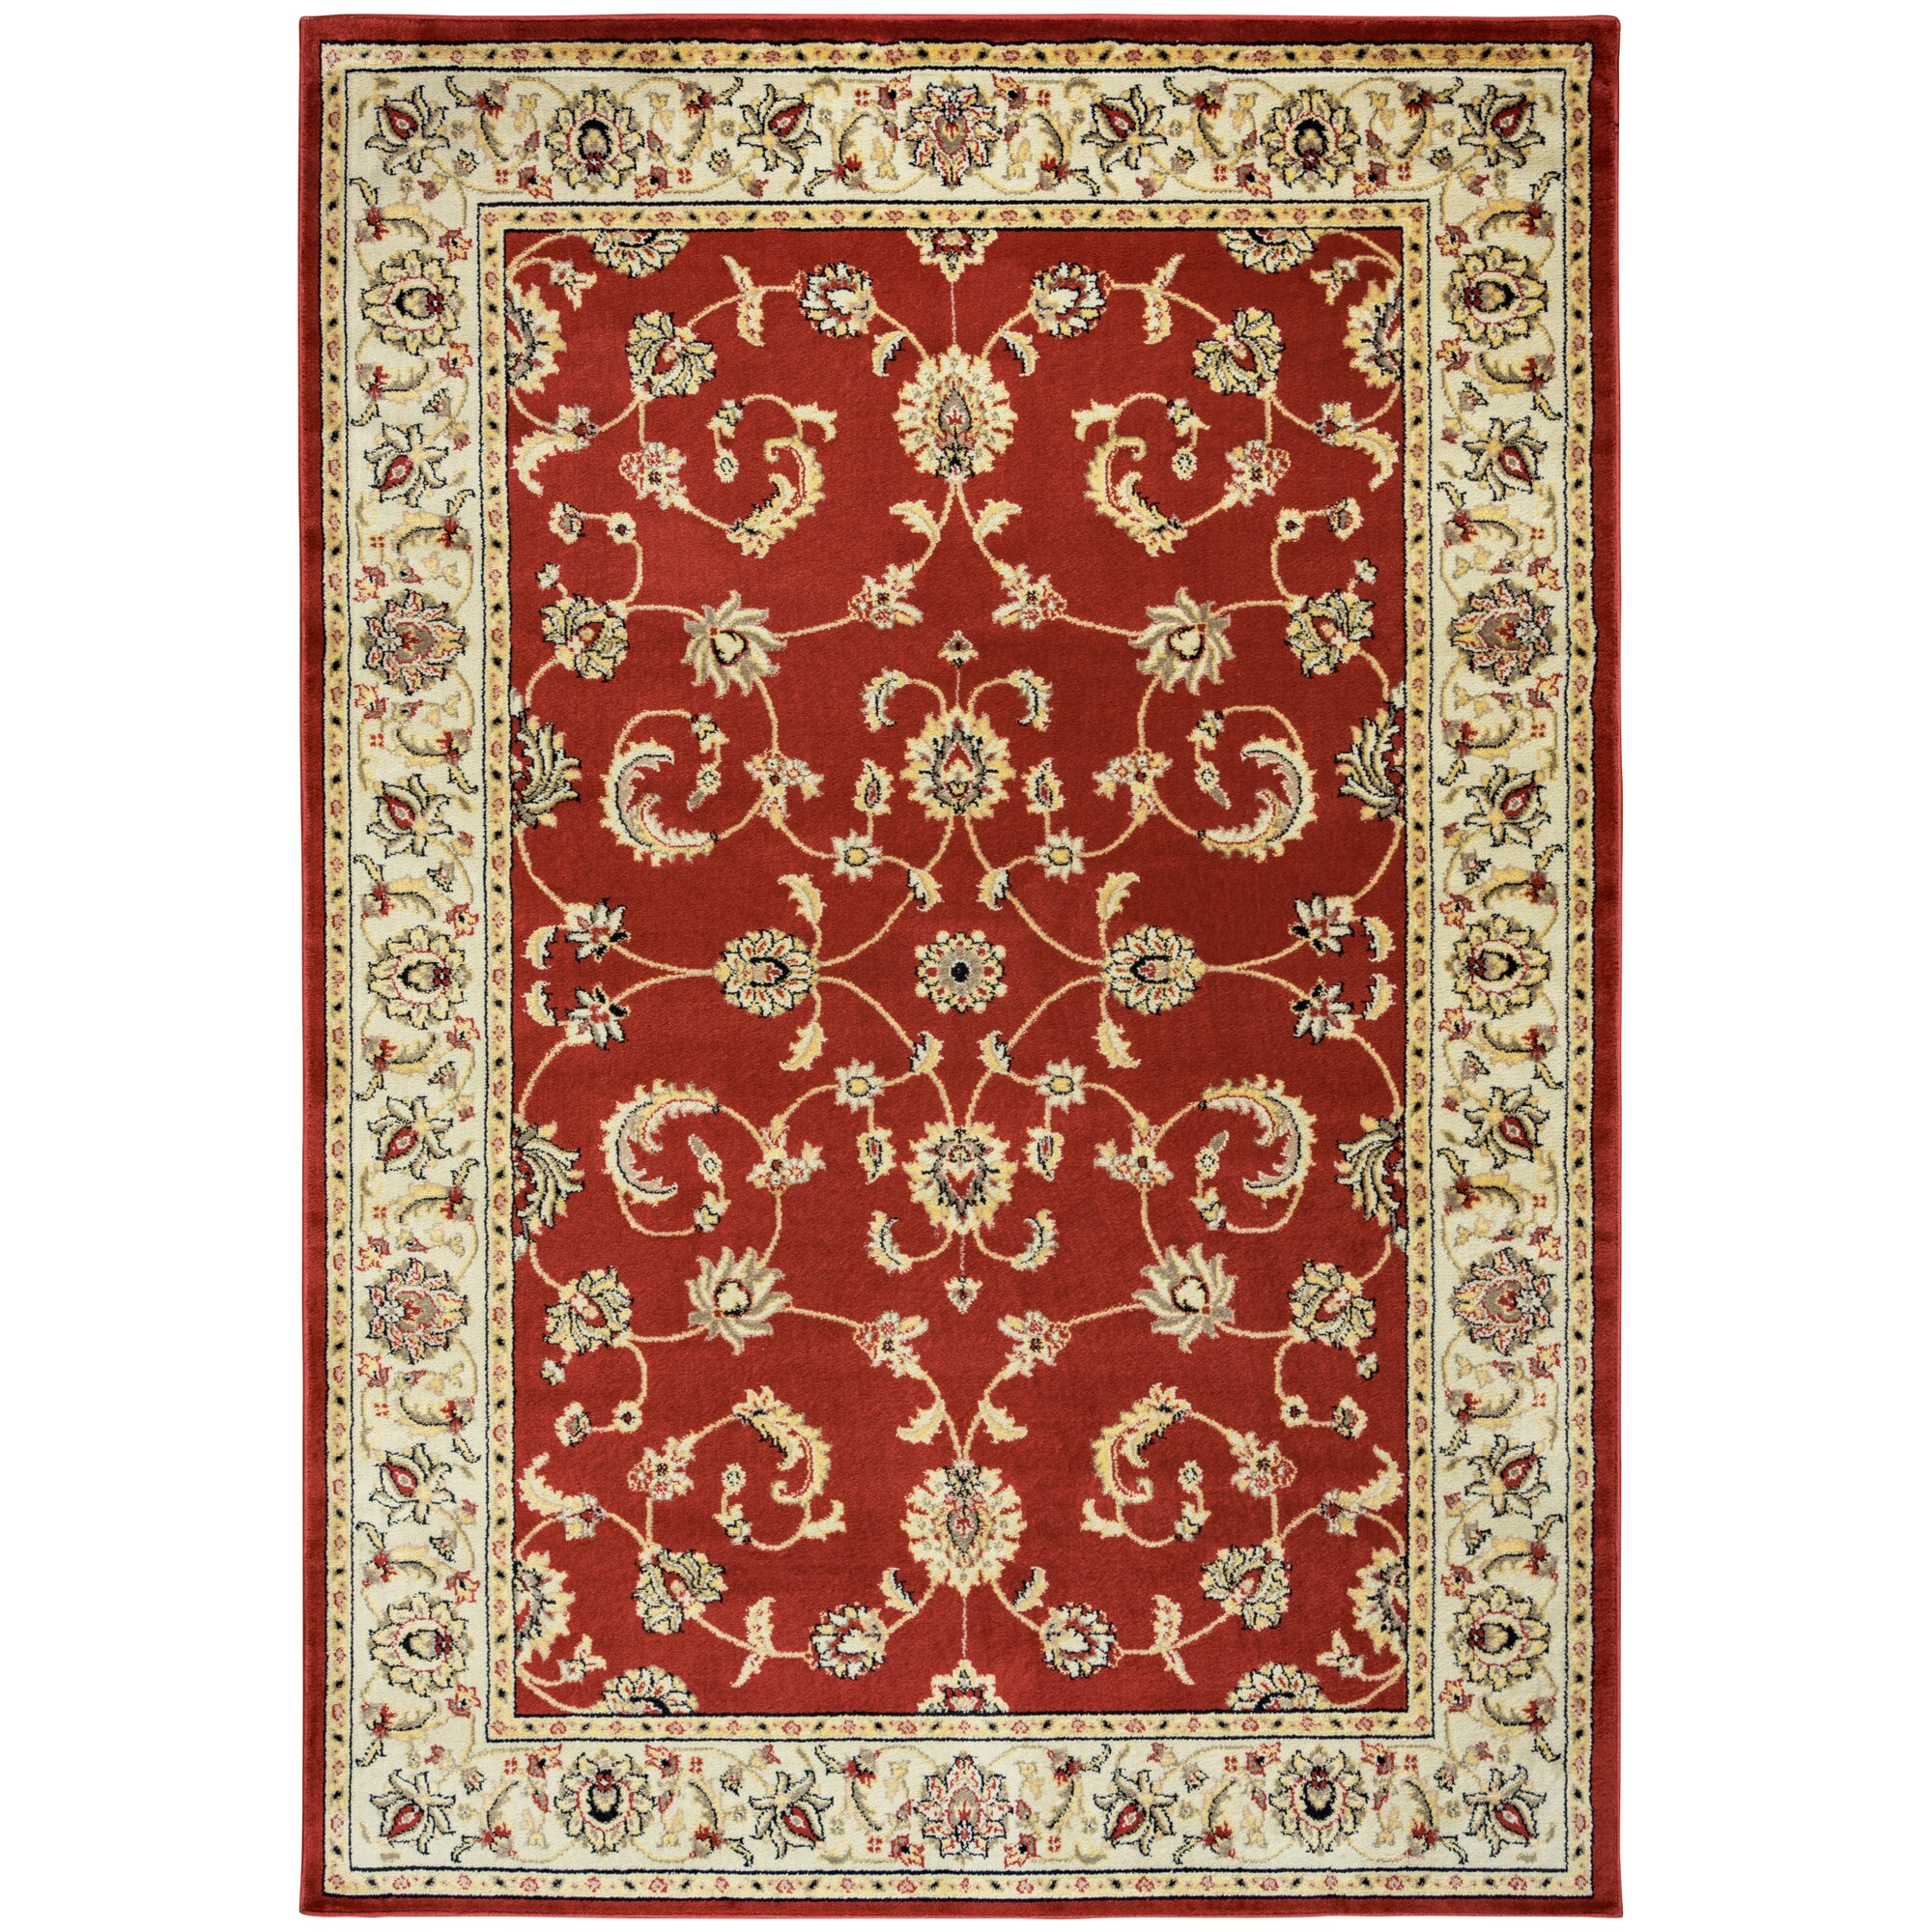 Threadbind culver red floral indoor outdoor area rug for Red floral area rug